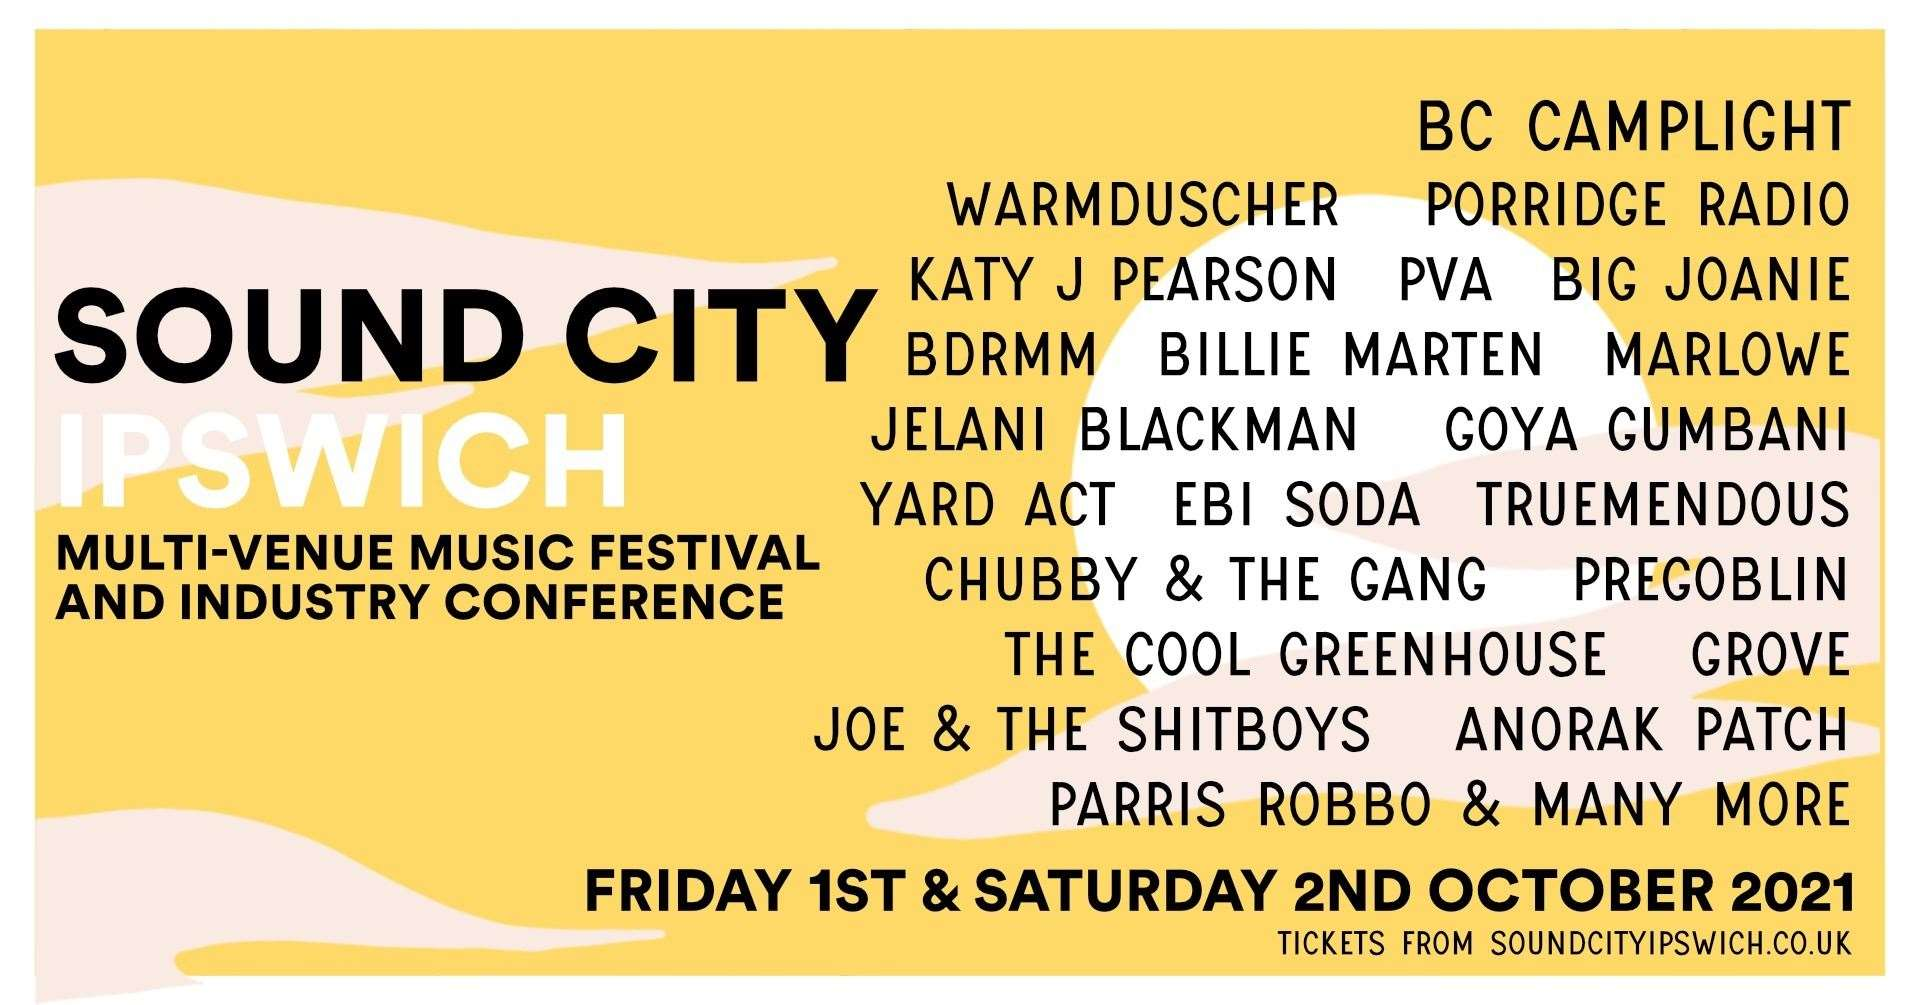 The line up poster for Sound City Ipswich 2021 Picture: Sound City Ipswich